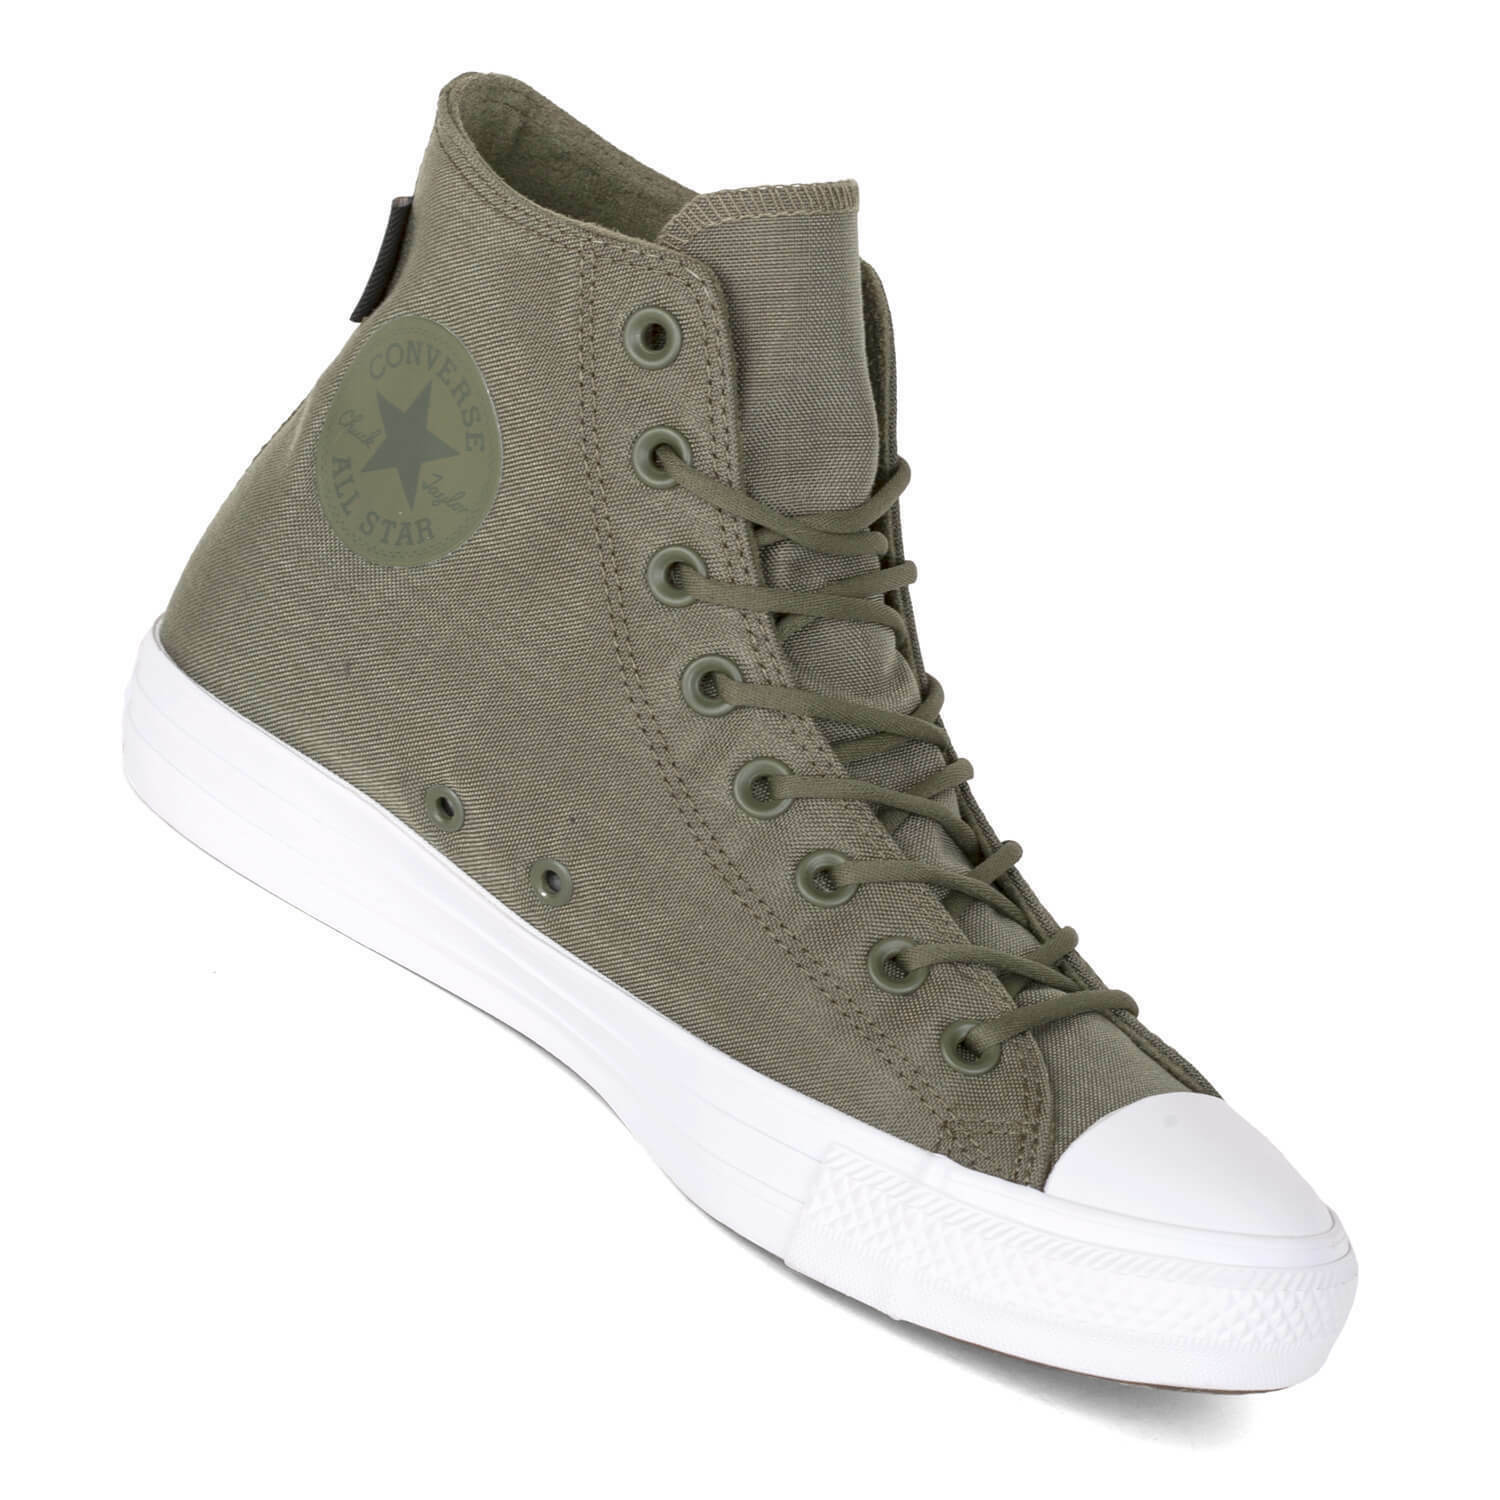 CONVERSE CHUCK TAYLOR ALL STAR HI CANVAS Homme Chaussures OLIVE 157518C Taille 11 NEW